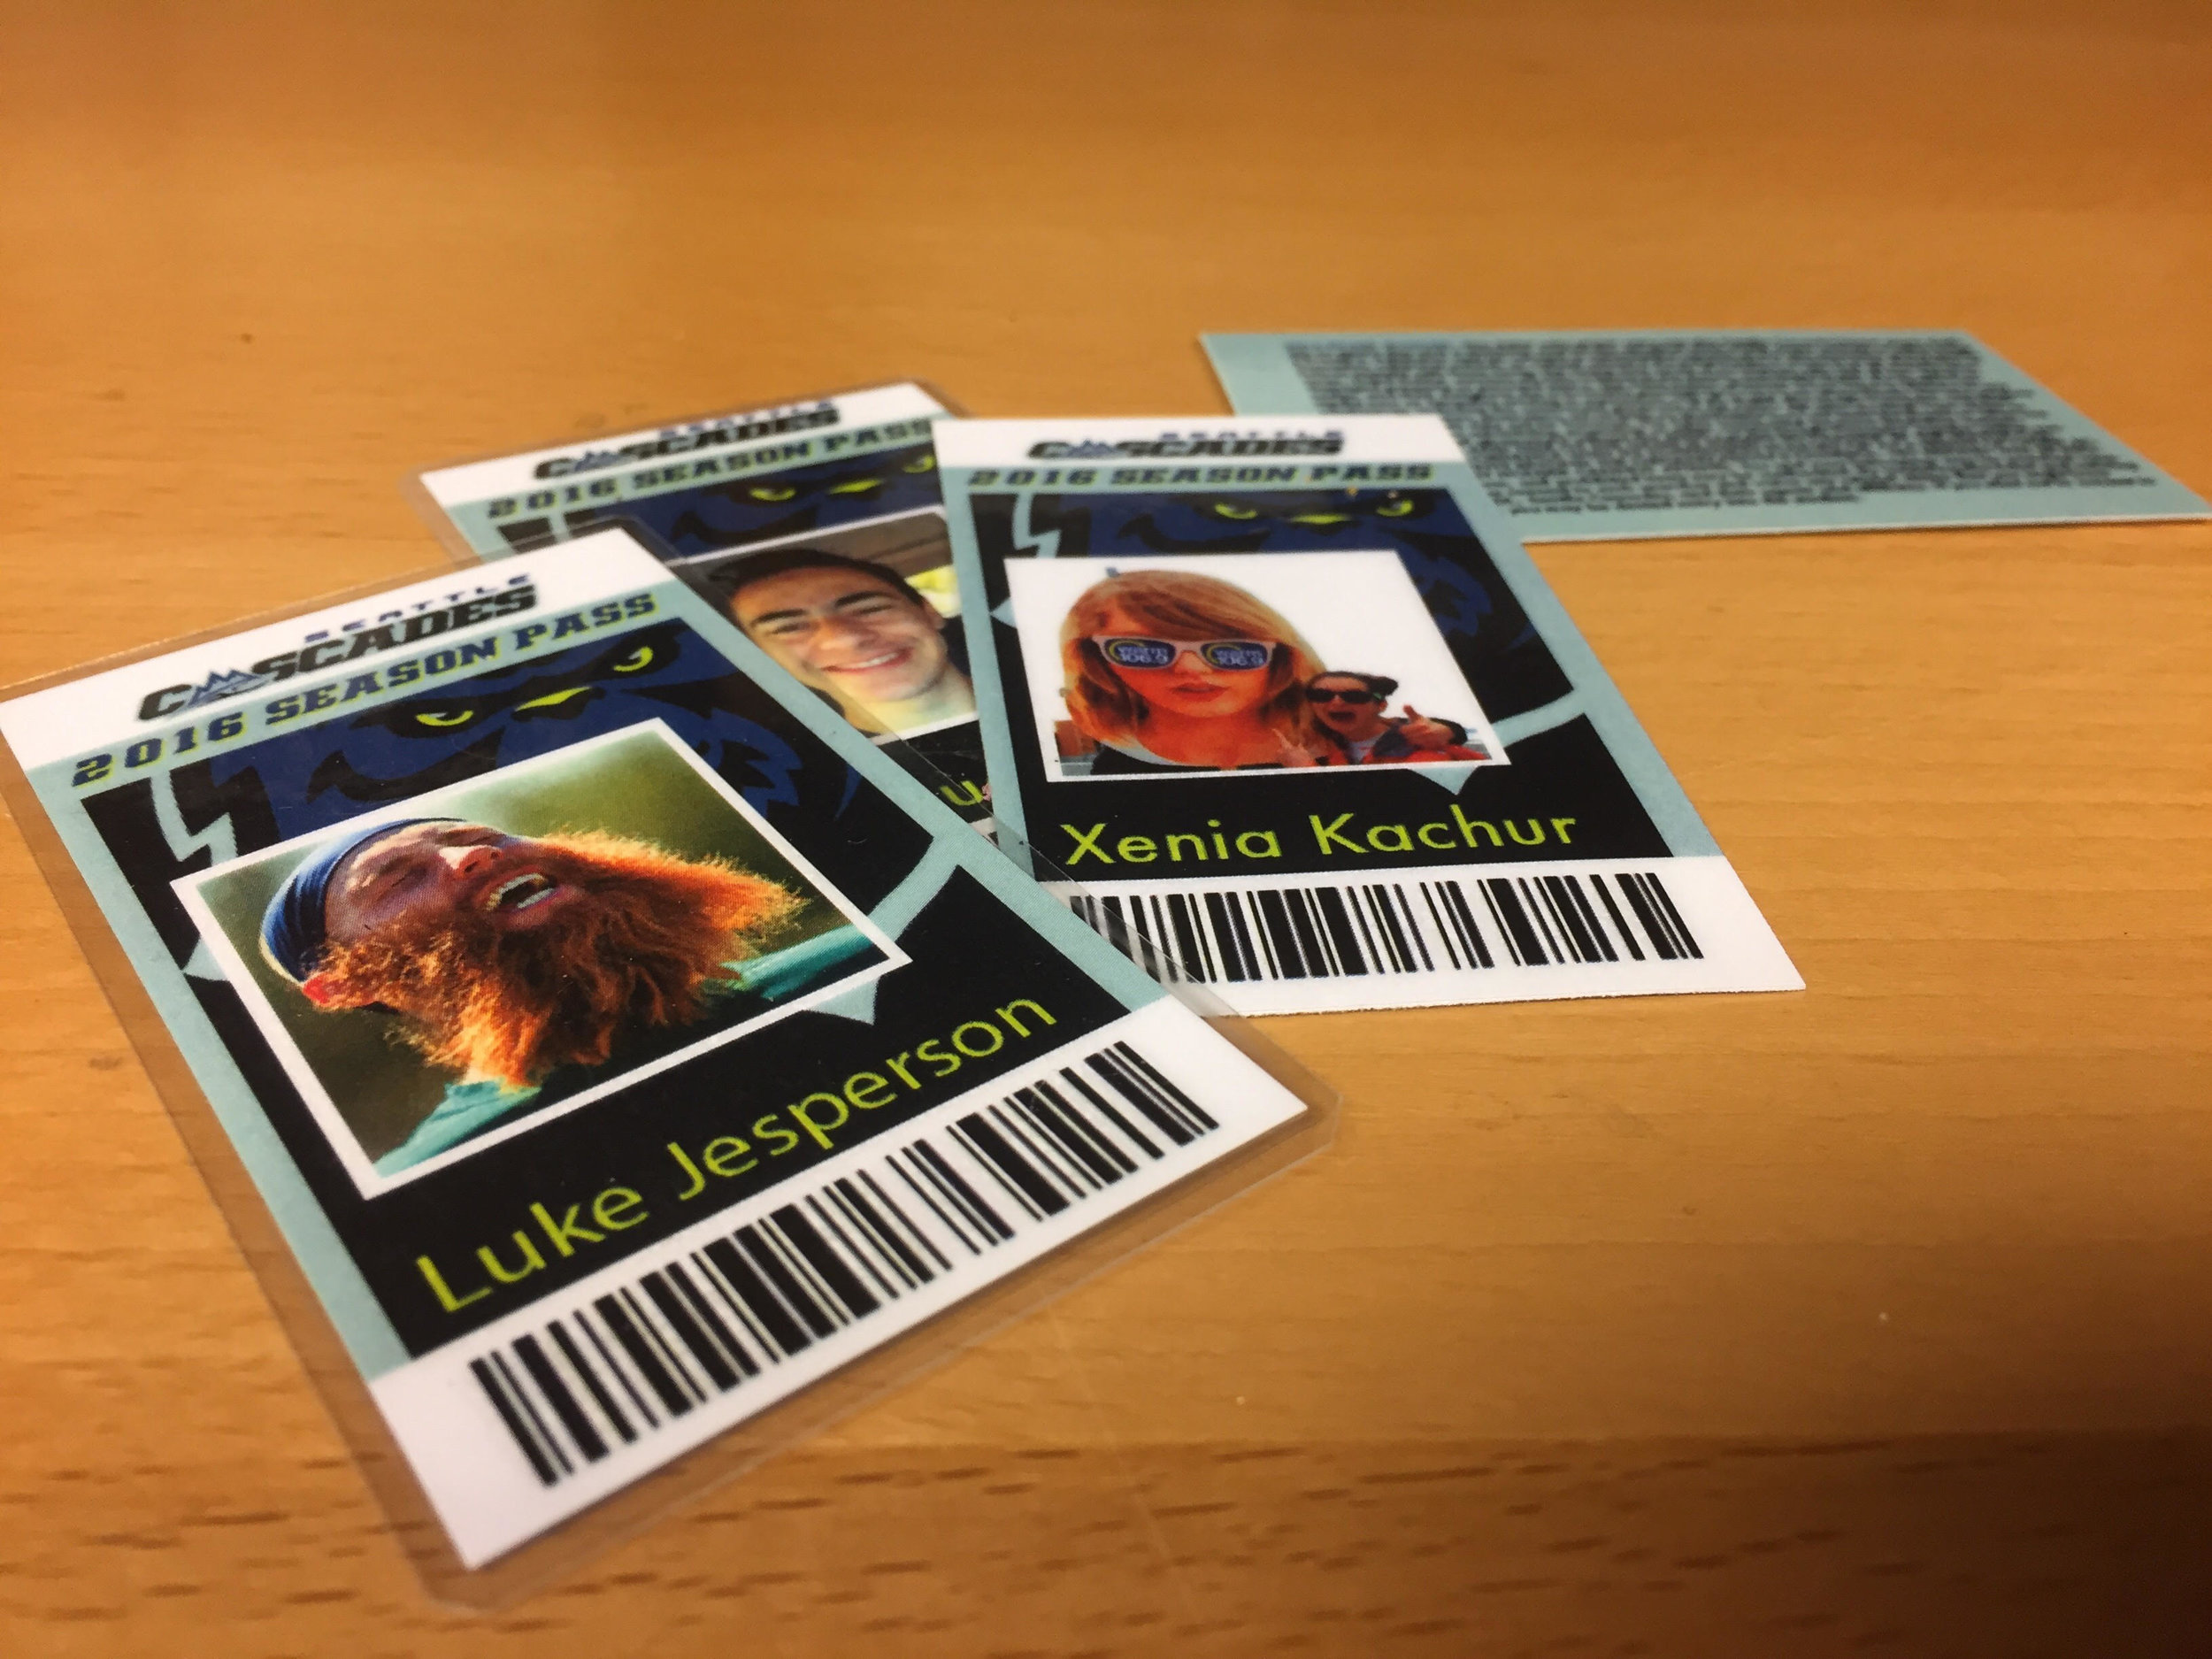 Examples of 2016 season pass ID card